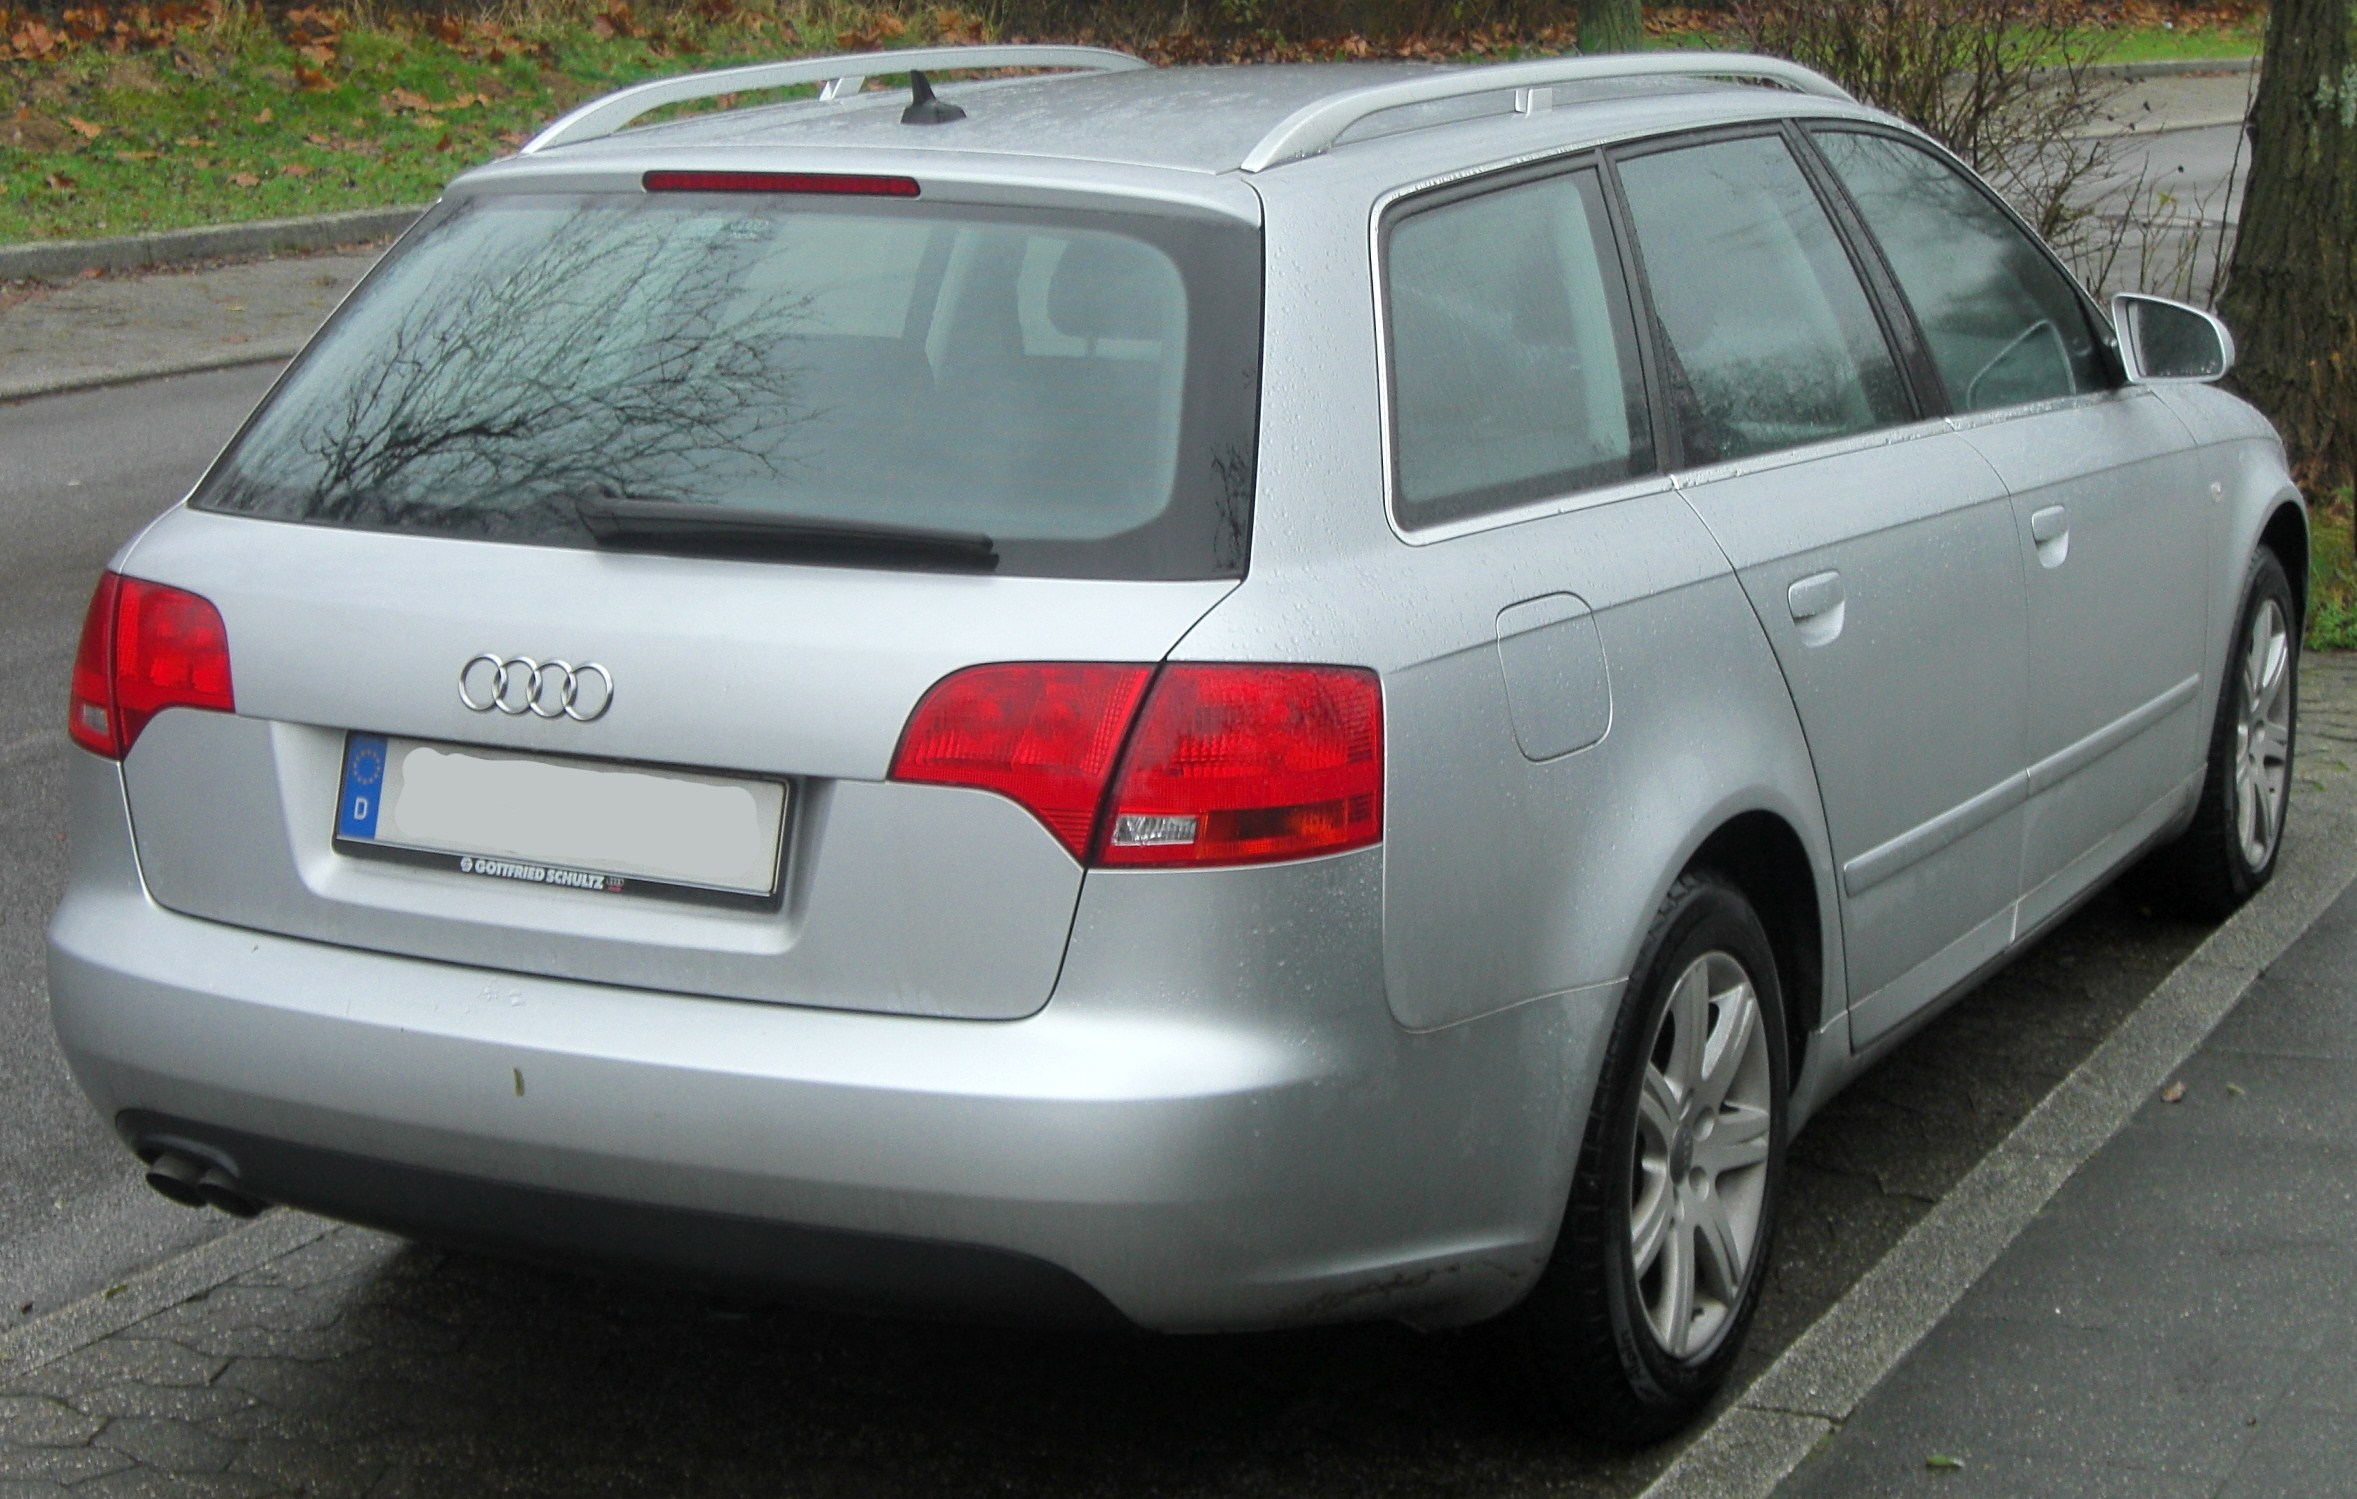 2006 audi s4 avant 8e pictures information and specs. Black Bedroom Furniture Sets. Home Design Ideas